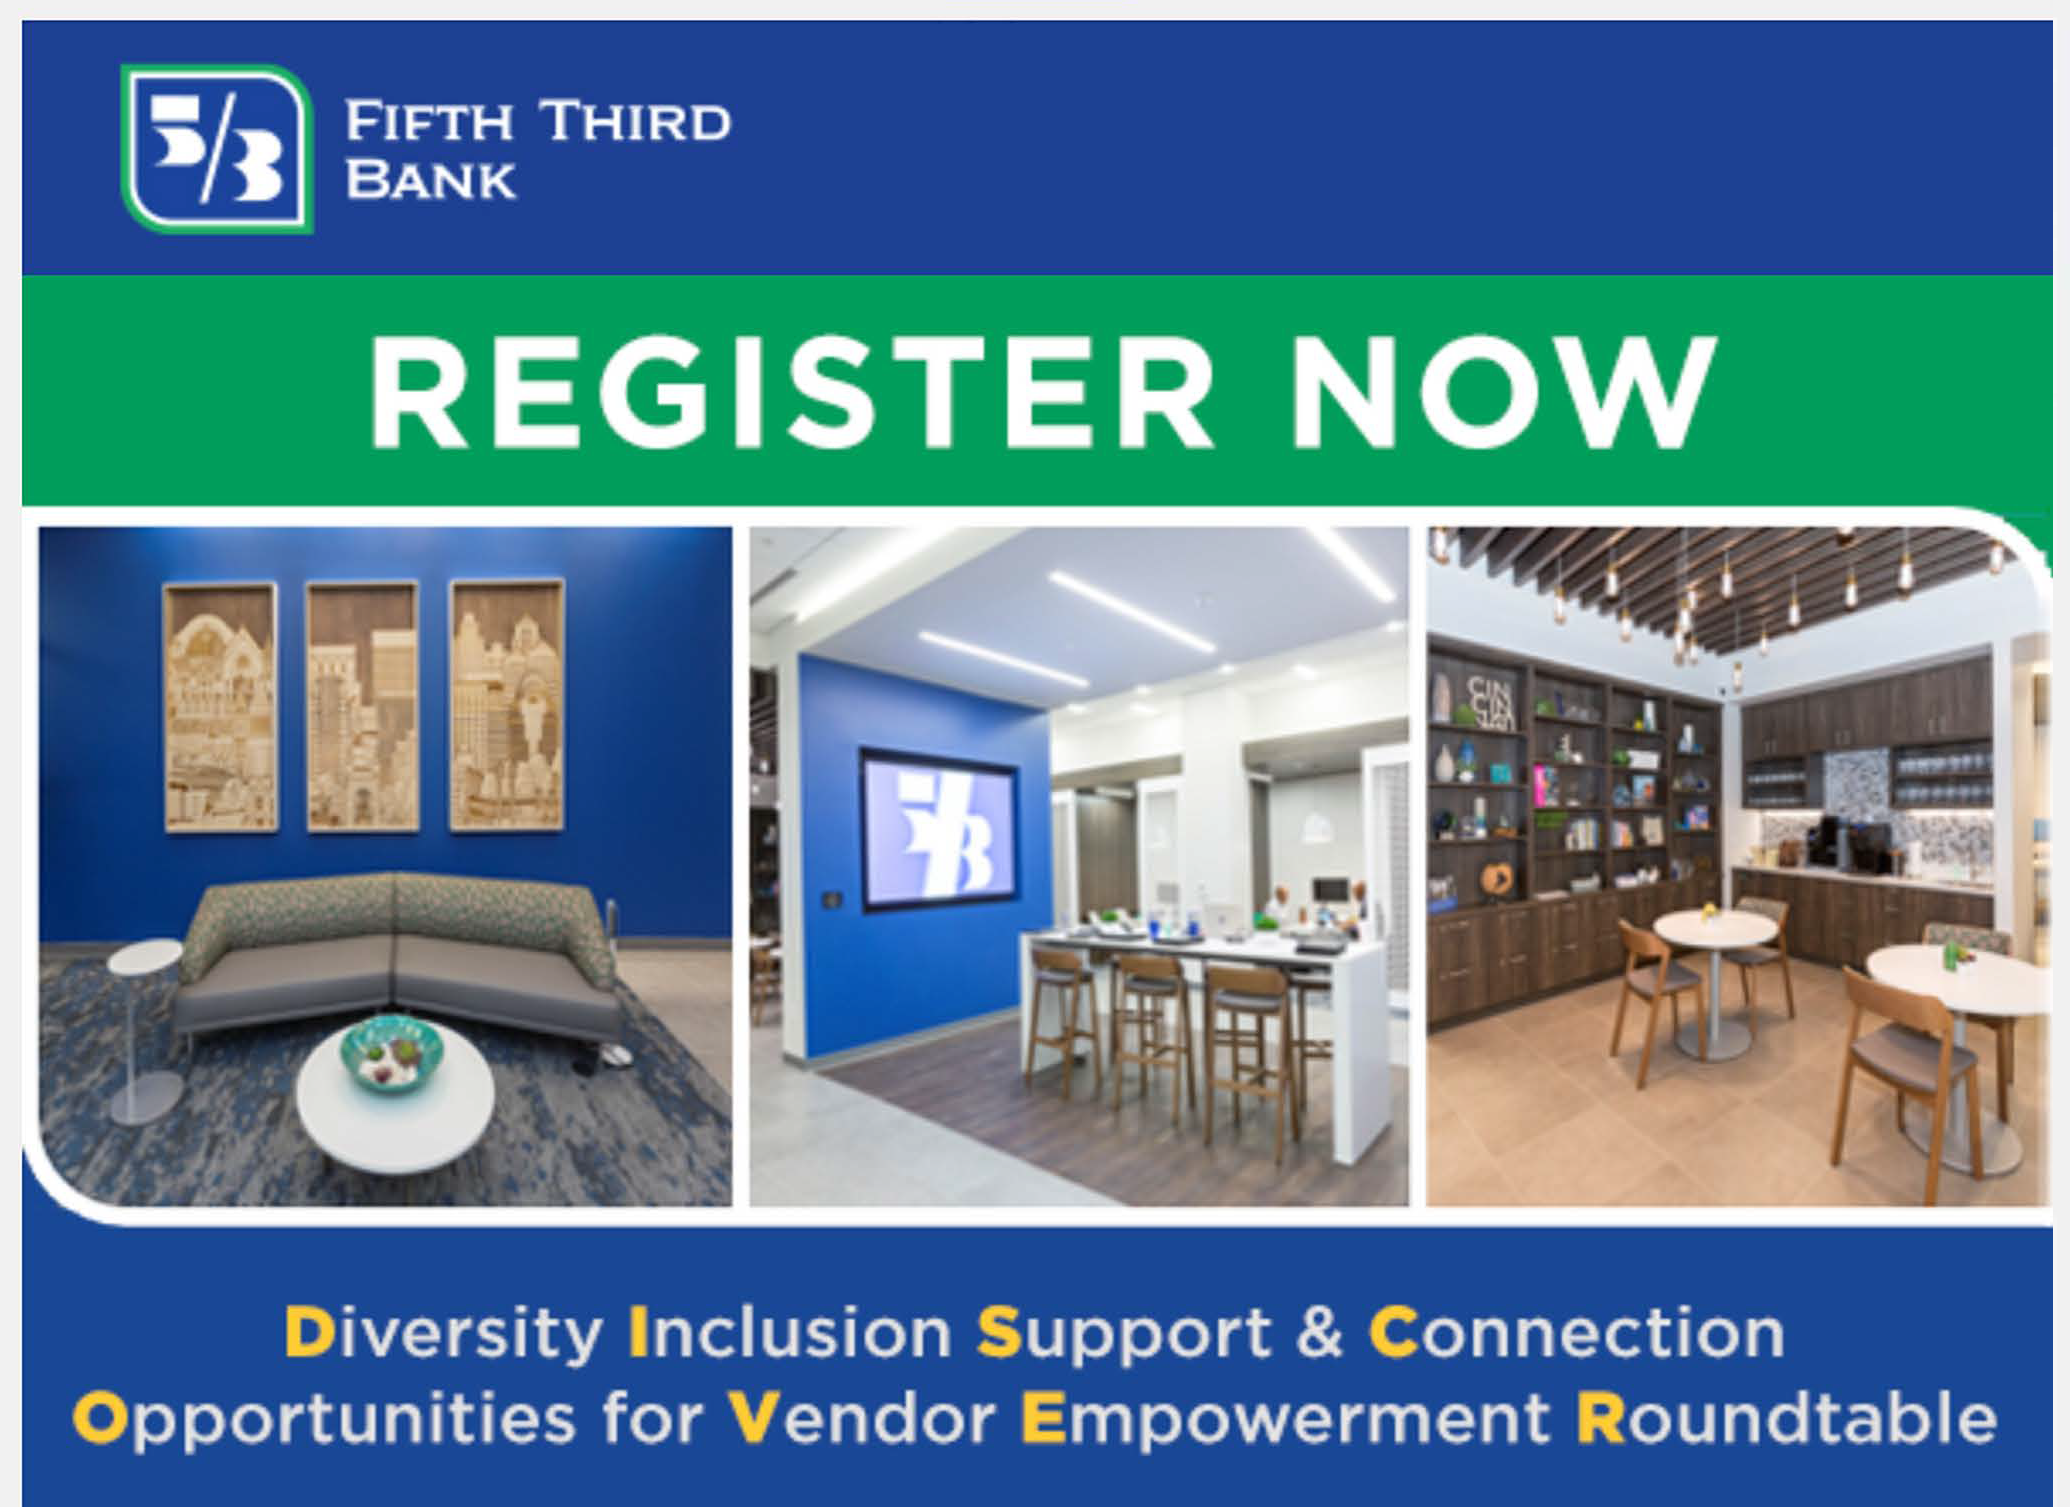 Fifth Third Supplier Diversity event for construction and property management suppliers on January 27th